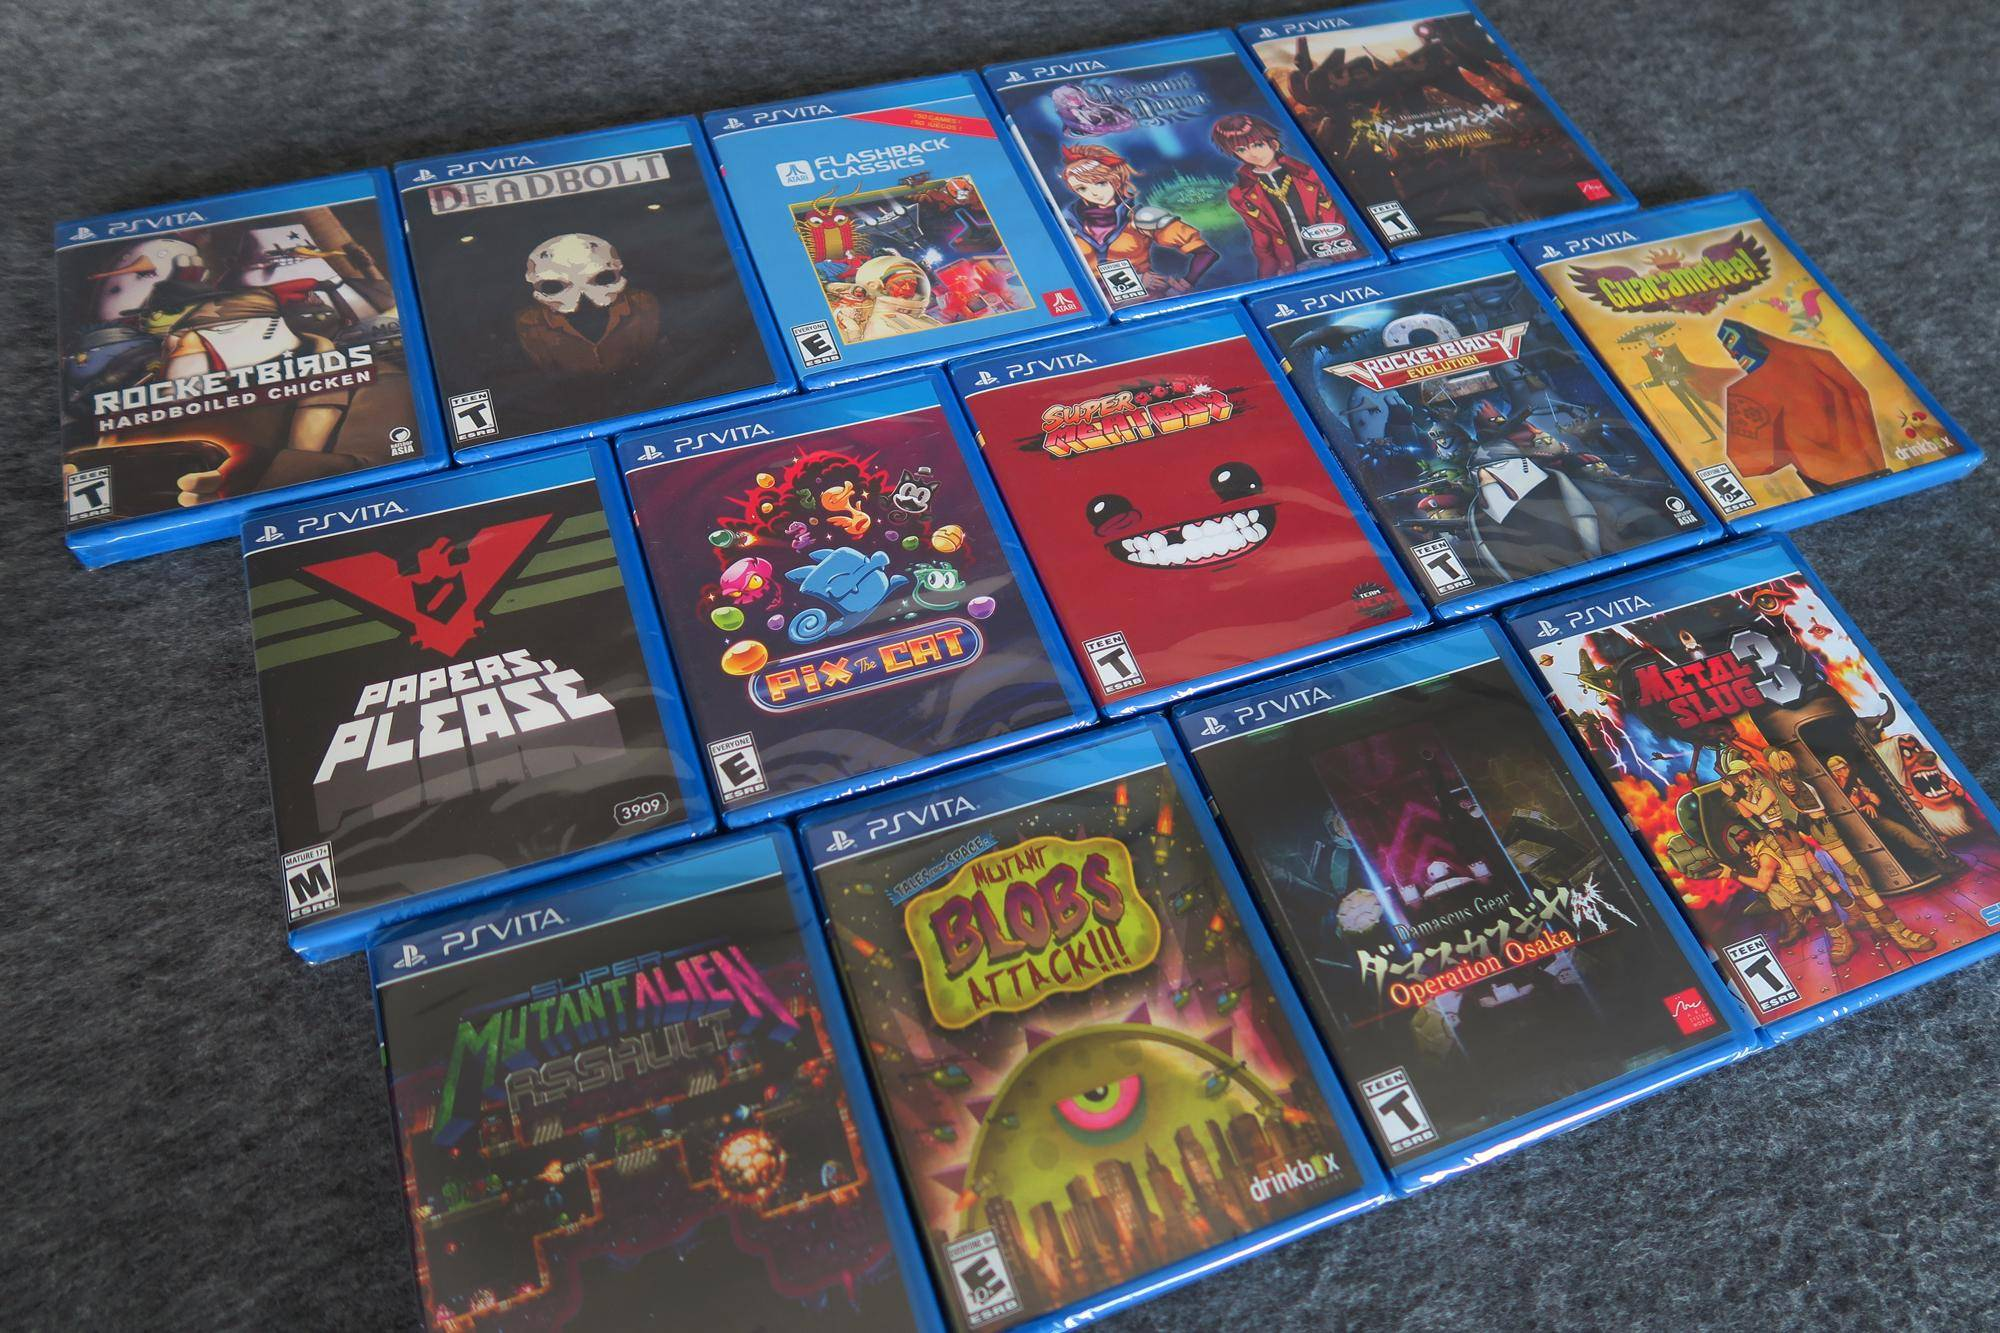 Limited Run Games Reveals Remaining PS Vita Titles